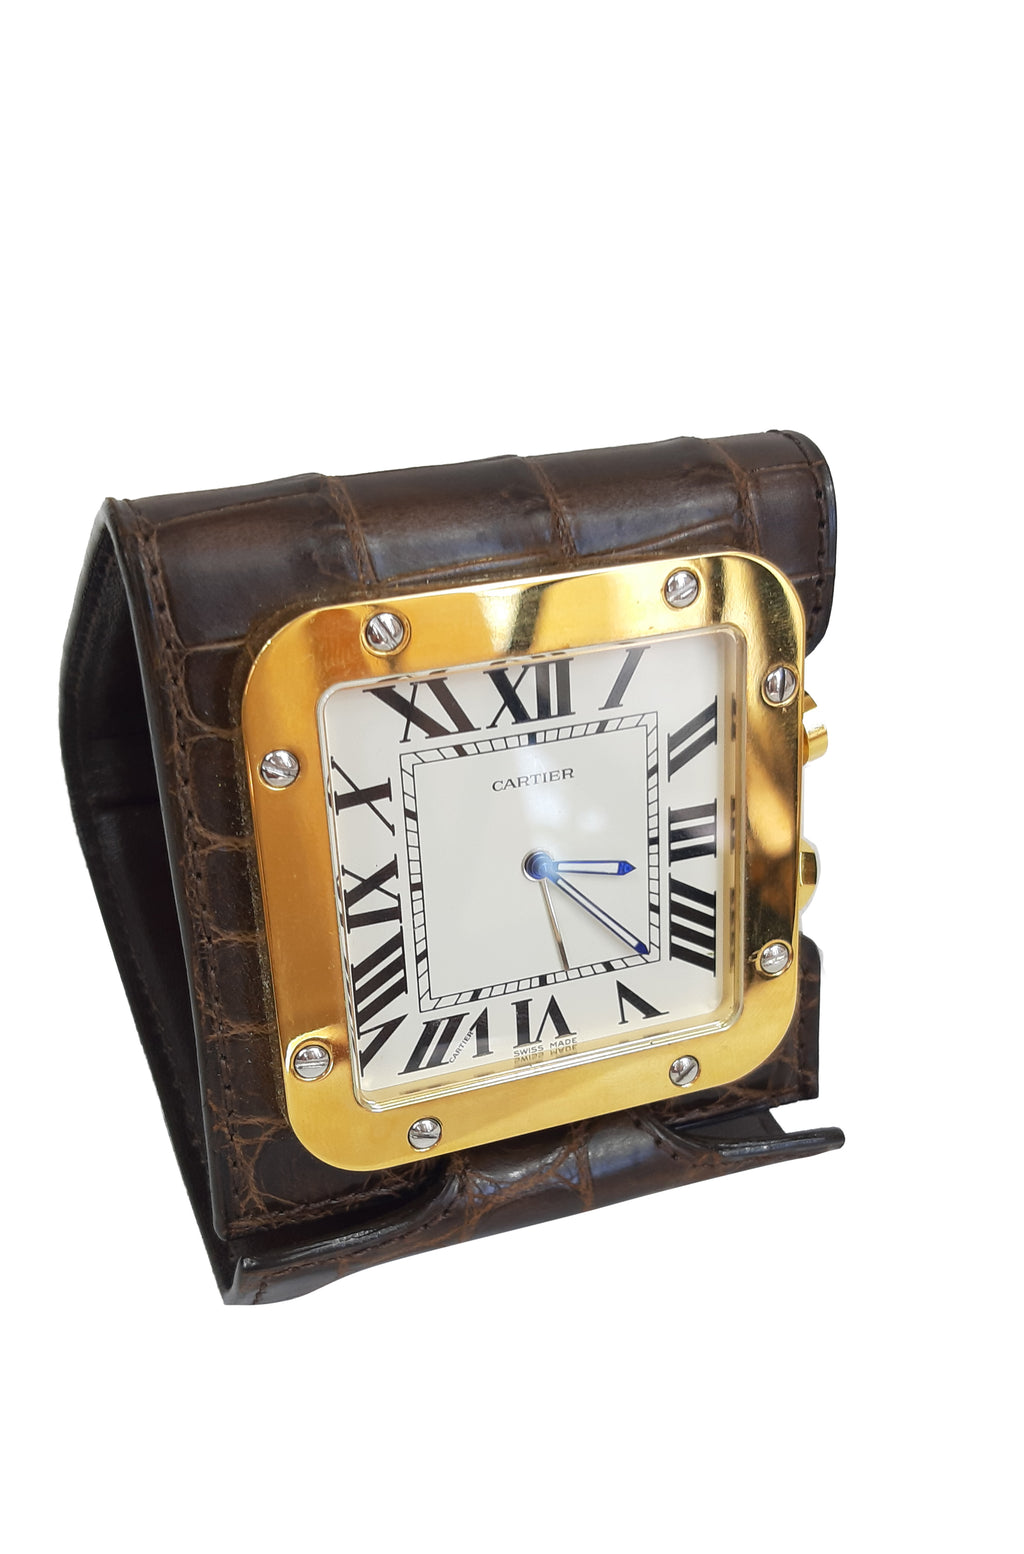 Cartier Travel Alarm Clock, Quartz Movement, Sapphire Glass, Roman Numerals and Dark Brown Crocodile Leather